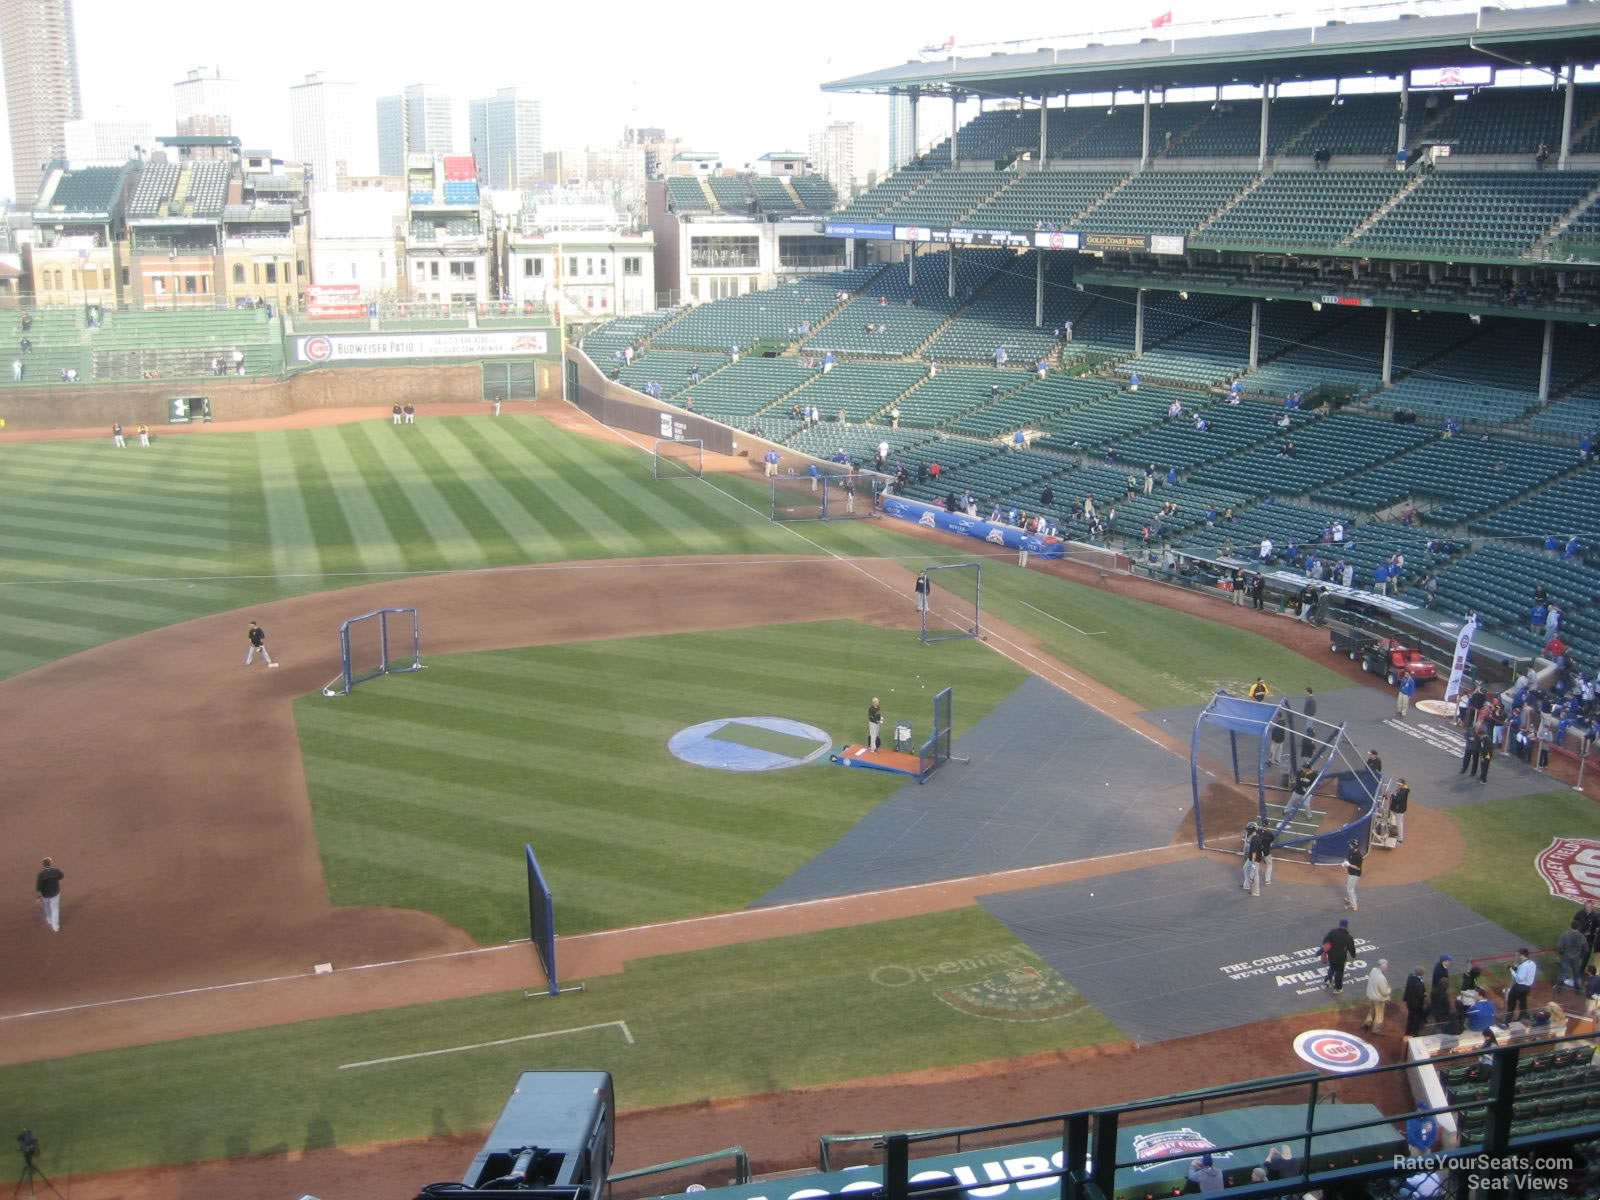 Wrigley Field Section 413 - Chicago Cubs - RateYourSeats.com